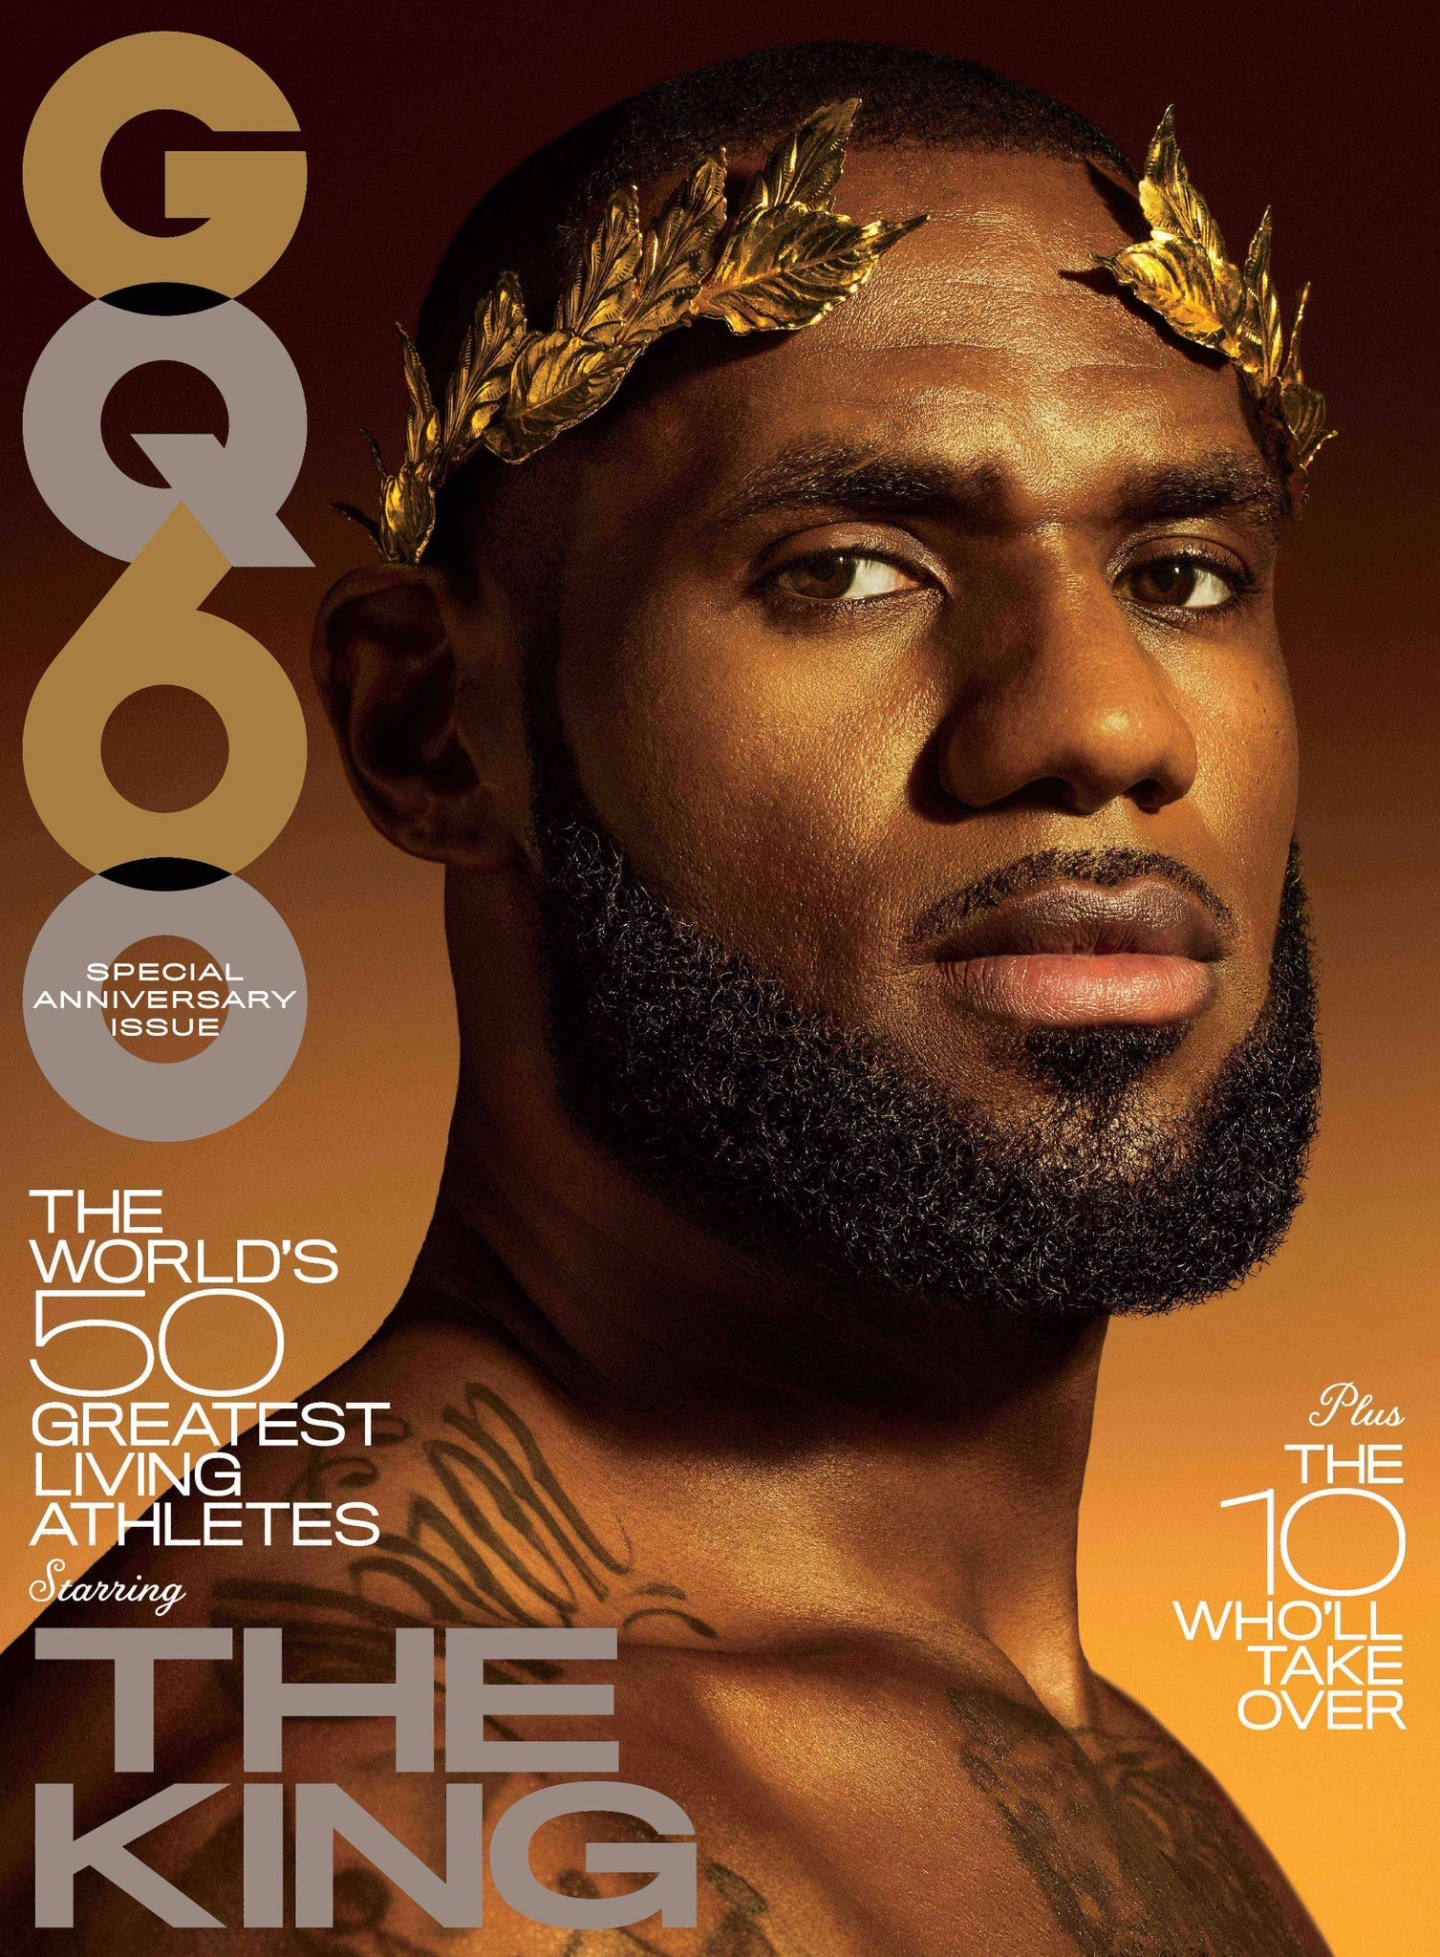 LeBron James Covers GQ's 60th Anniversary Issue